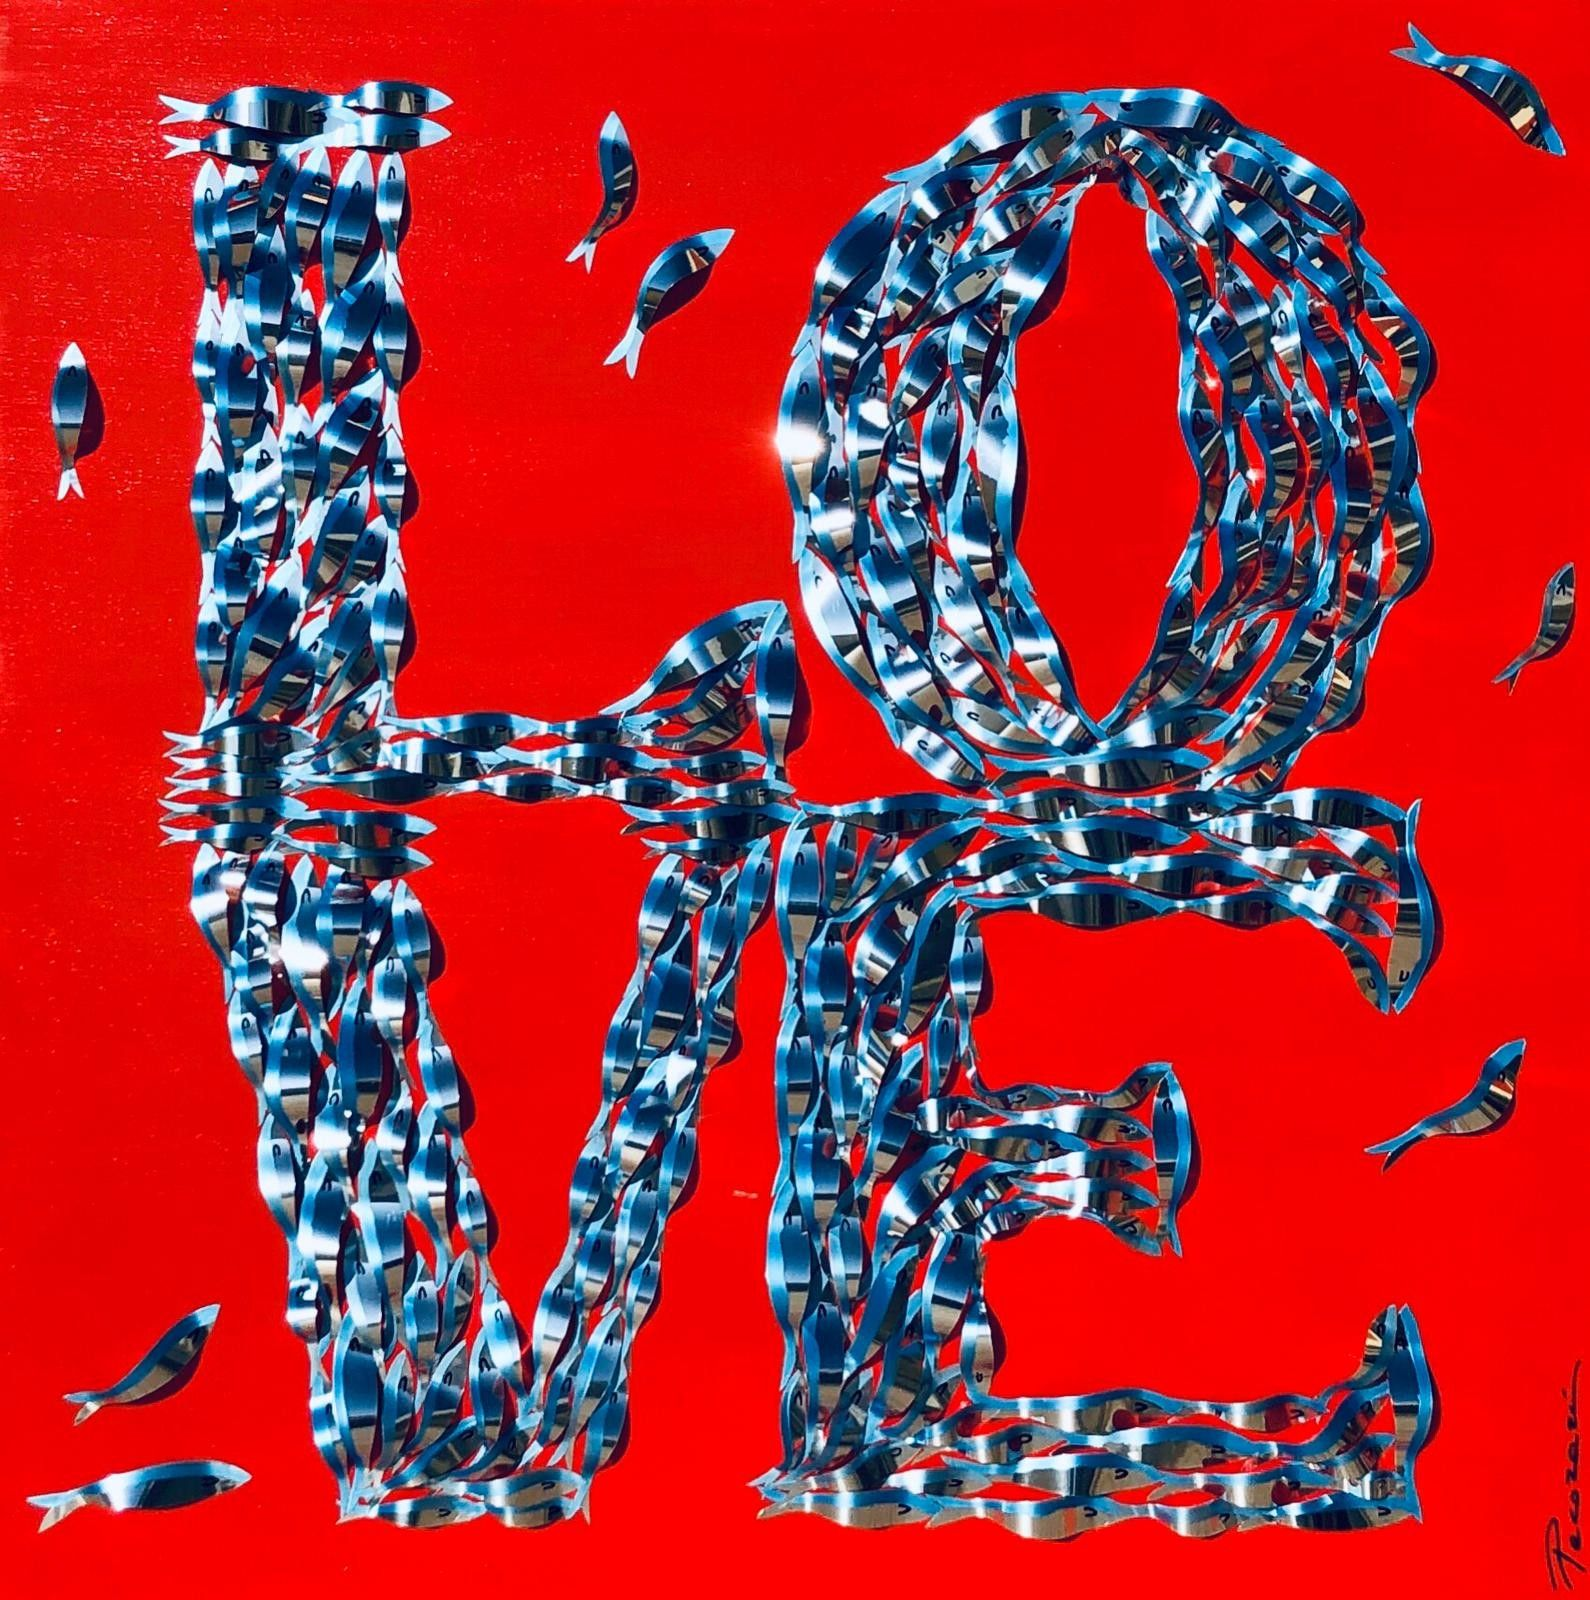 "MIXED MEDIA BARBARA PECORARI "" SARDINES LEAPING OUT POP LOVE ""  dimensioni  L 100 x H 100 cm."